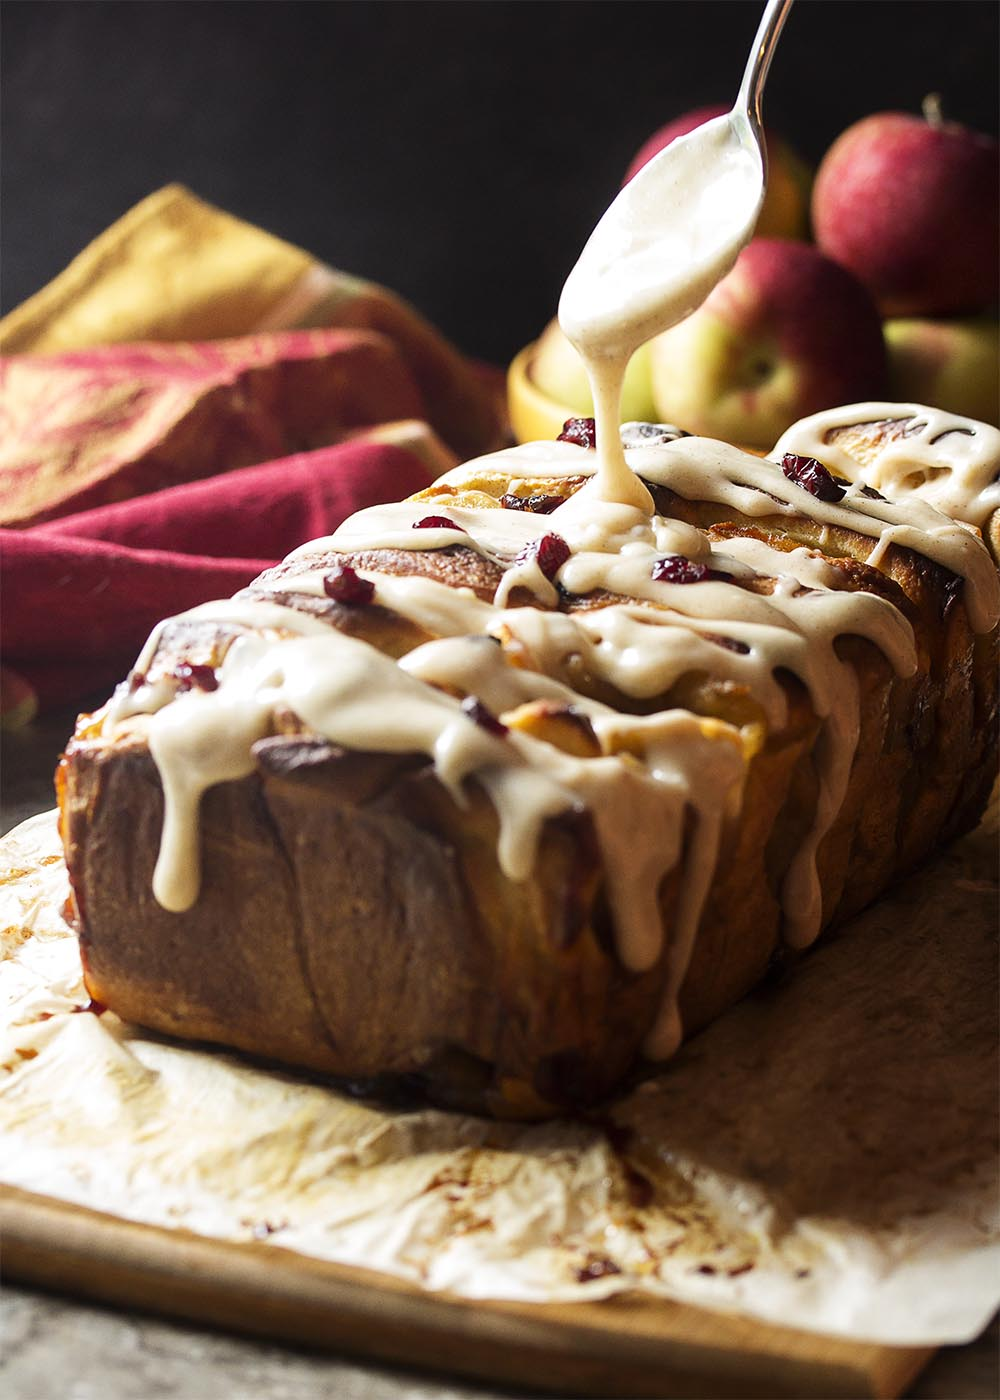 Apple pie filling and bourbon soaked cranberries are sandwiched in between layers of rich bread dough in this apple pull apart bread. | justalittlebitofbacon.com